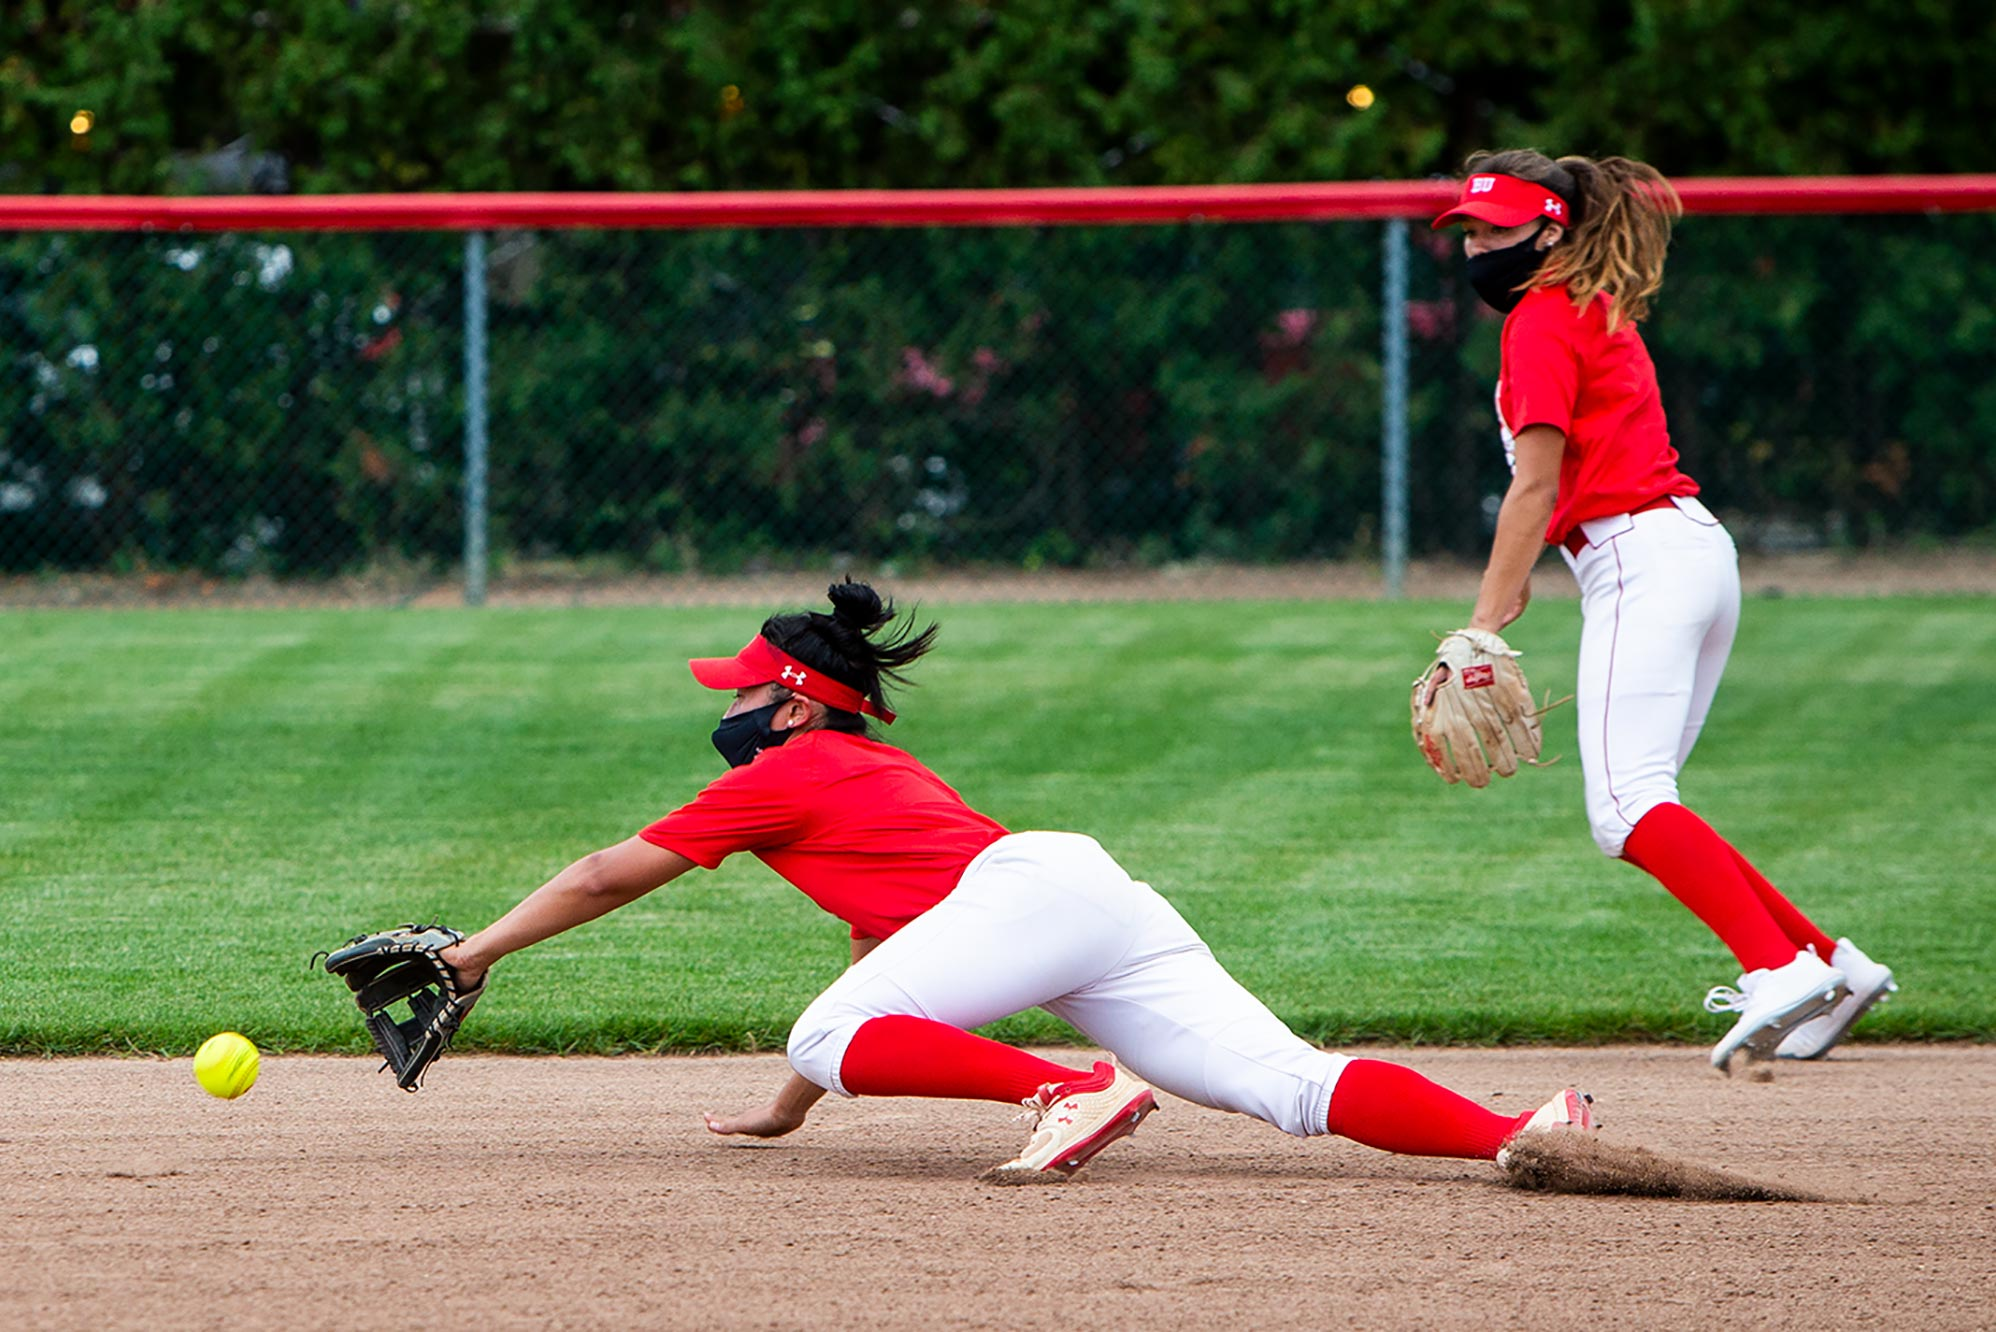 Photo of two of BU softball players, both wearing black masks and red and white uniforms. One woman lunges to the ground to field the ball while another backs her up.